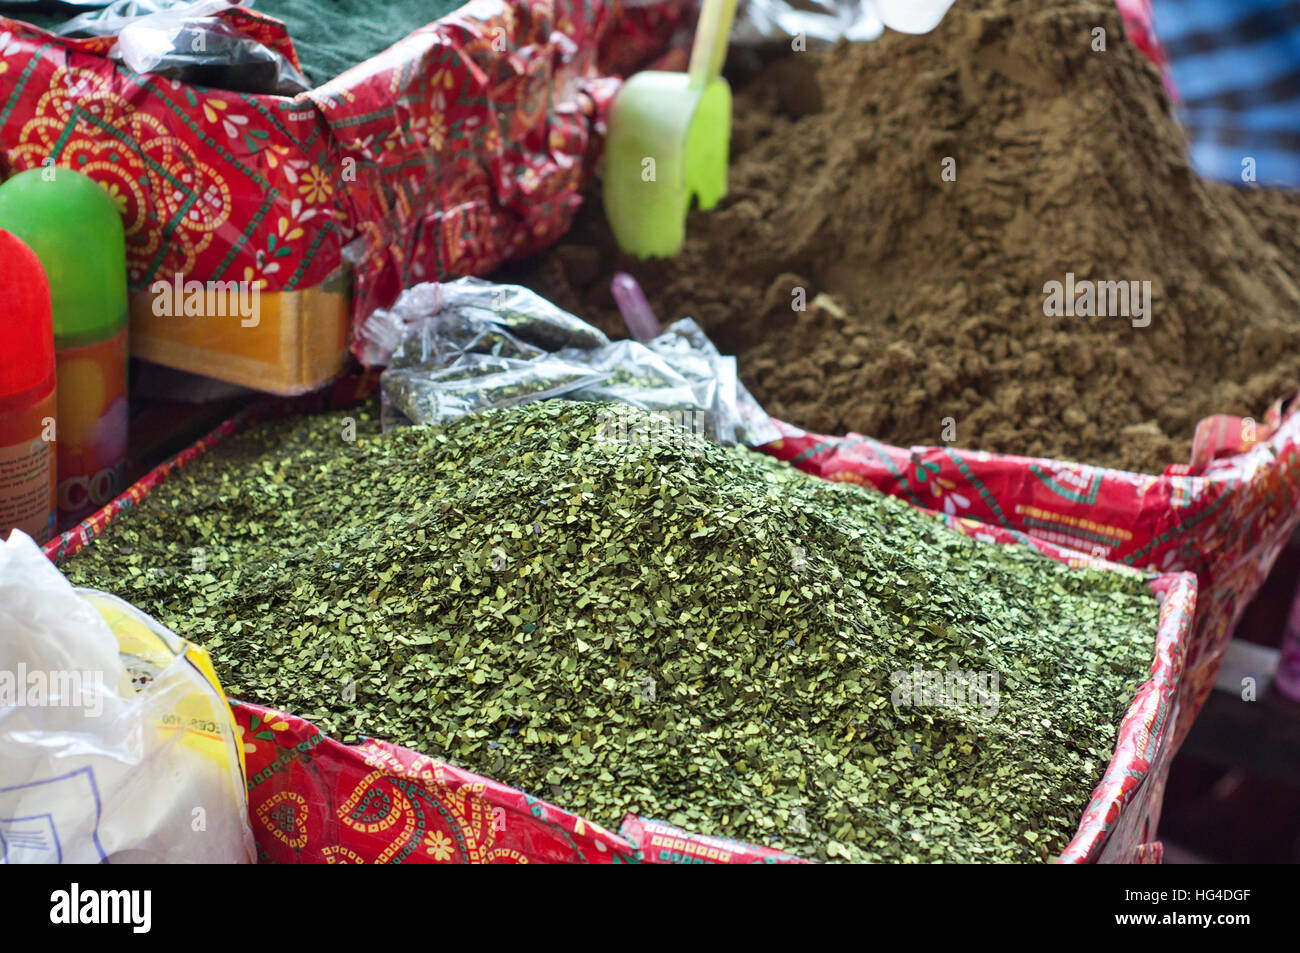 Henna Leaves And Powder For Sale At Market Stock Photo 130405535